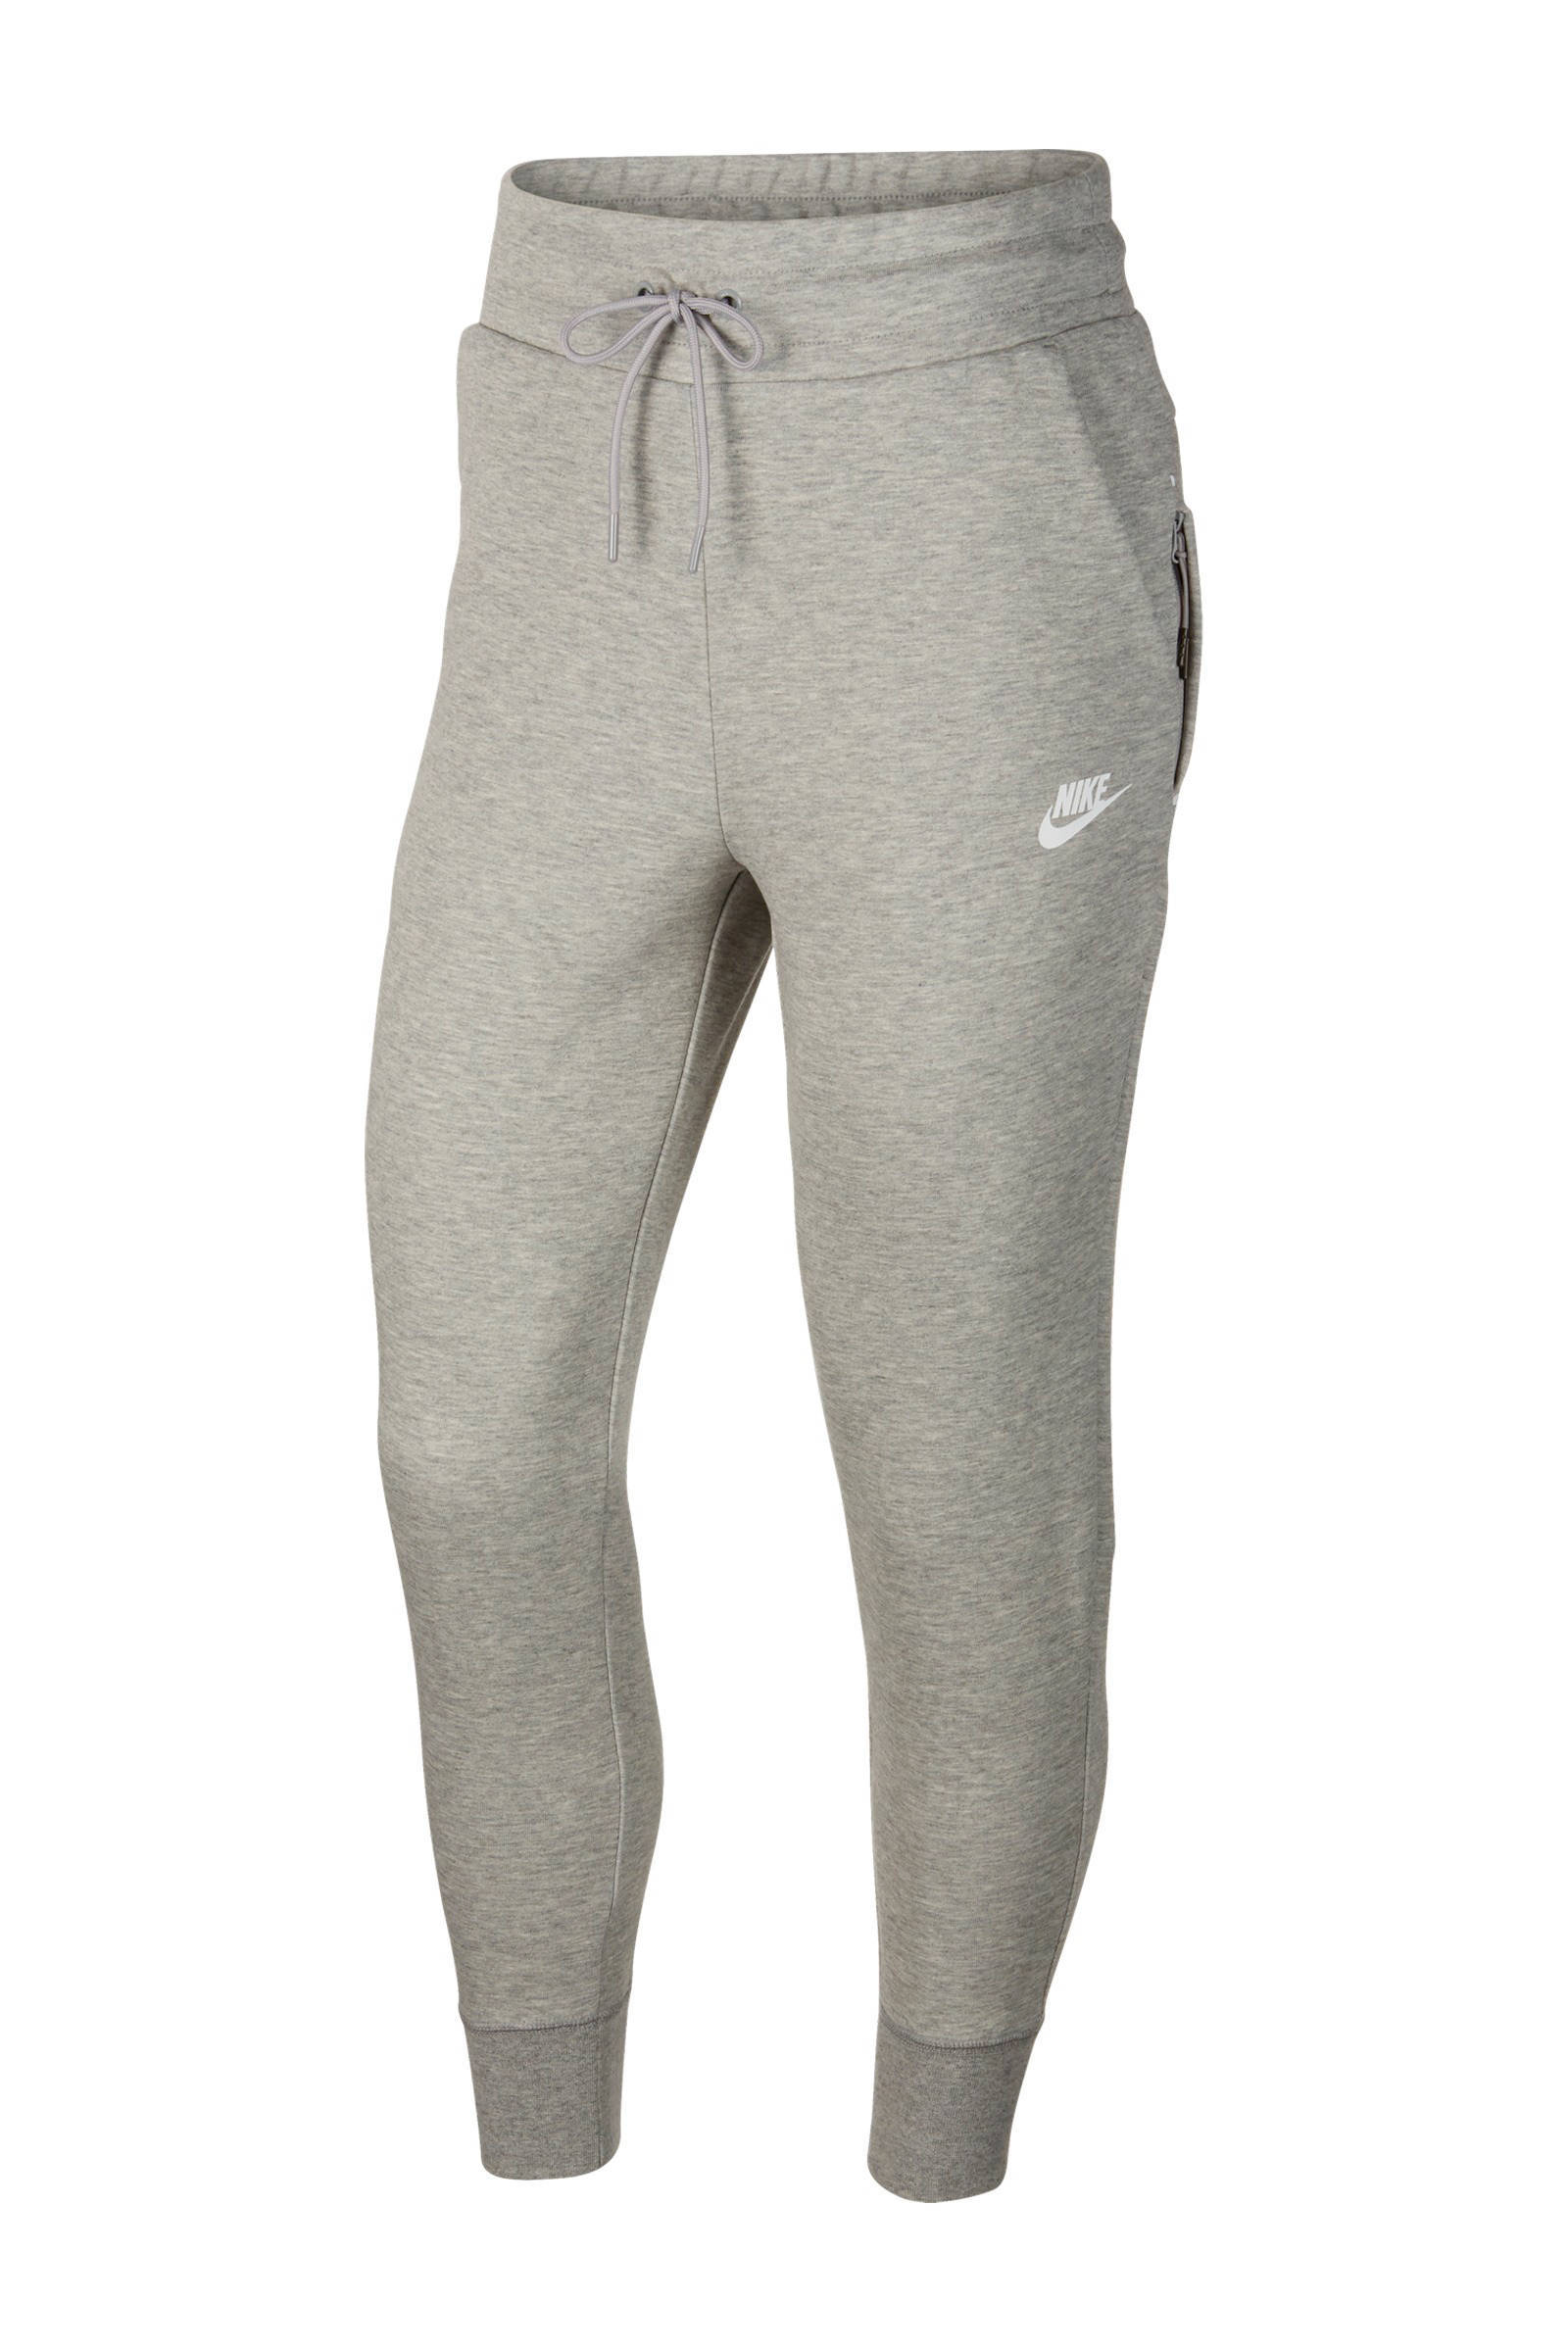 Tech Fleece regular fit joggingbroek met logo grijs melange